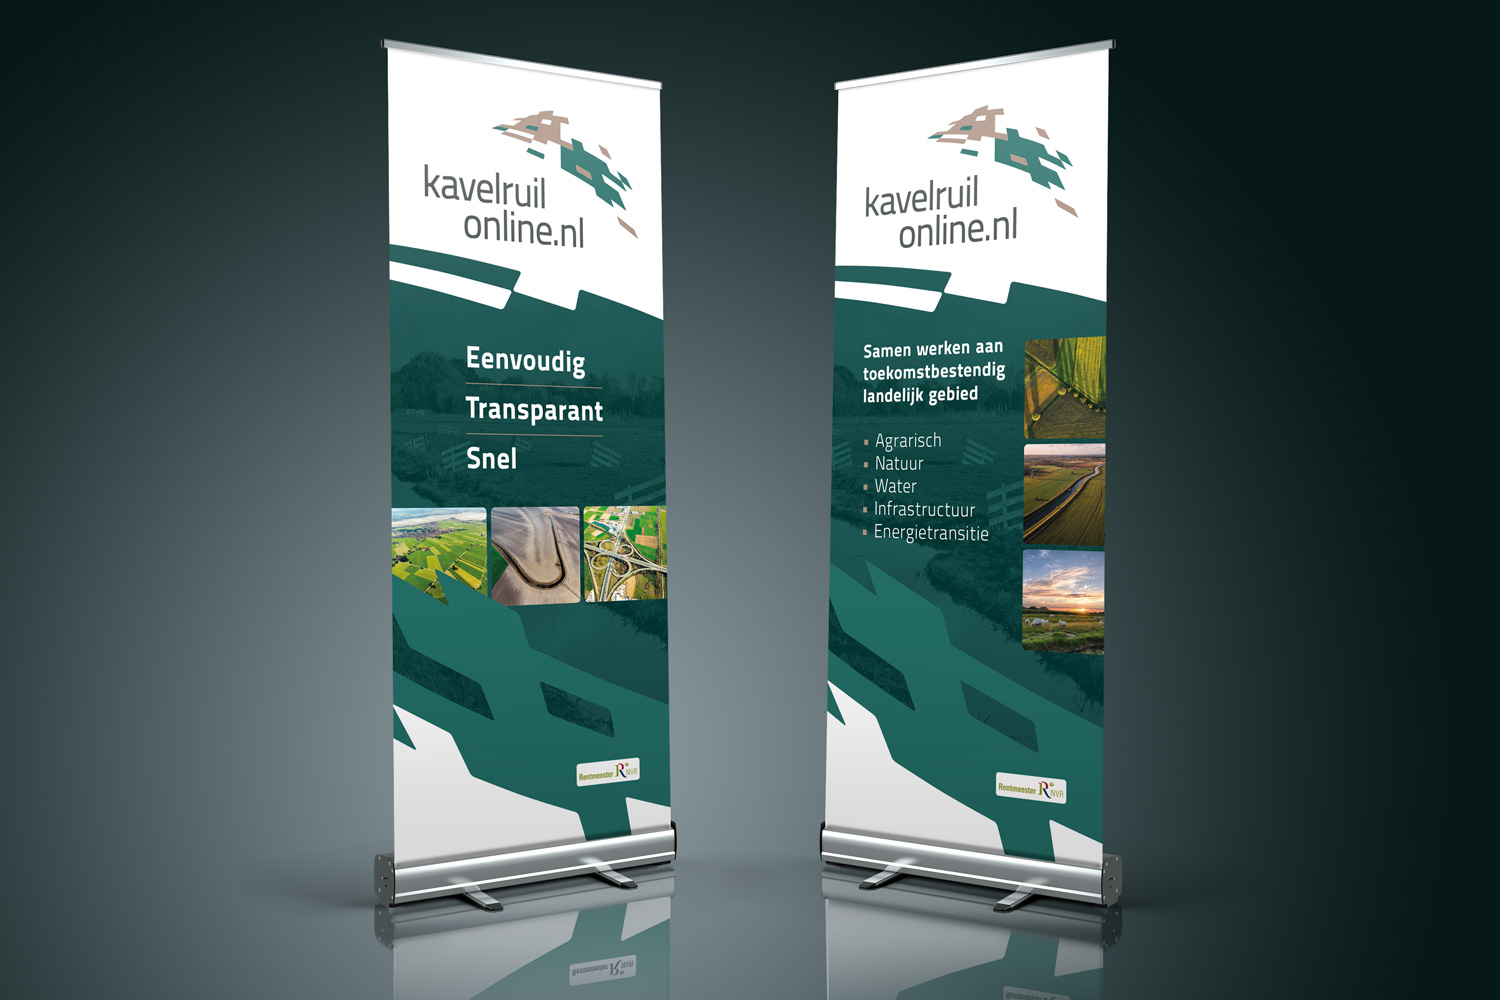 roll-up banners Kavelruilonline.nl